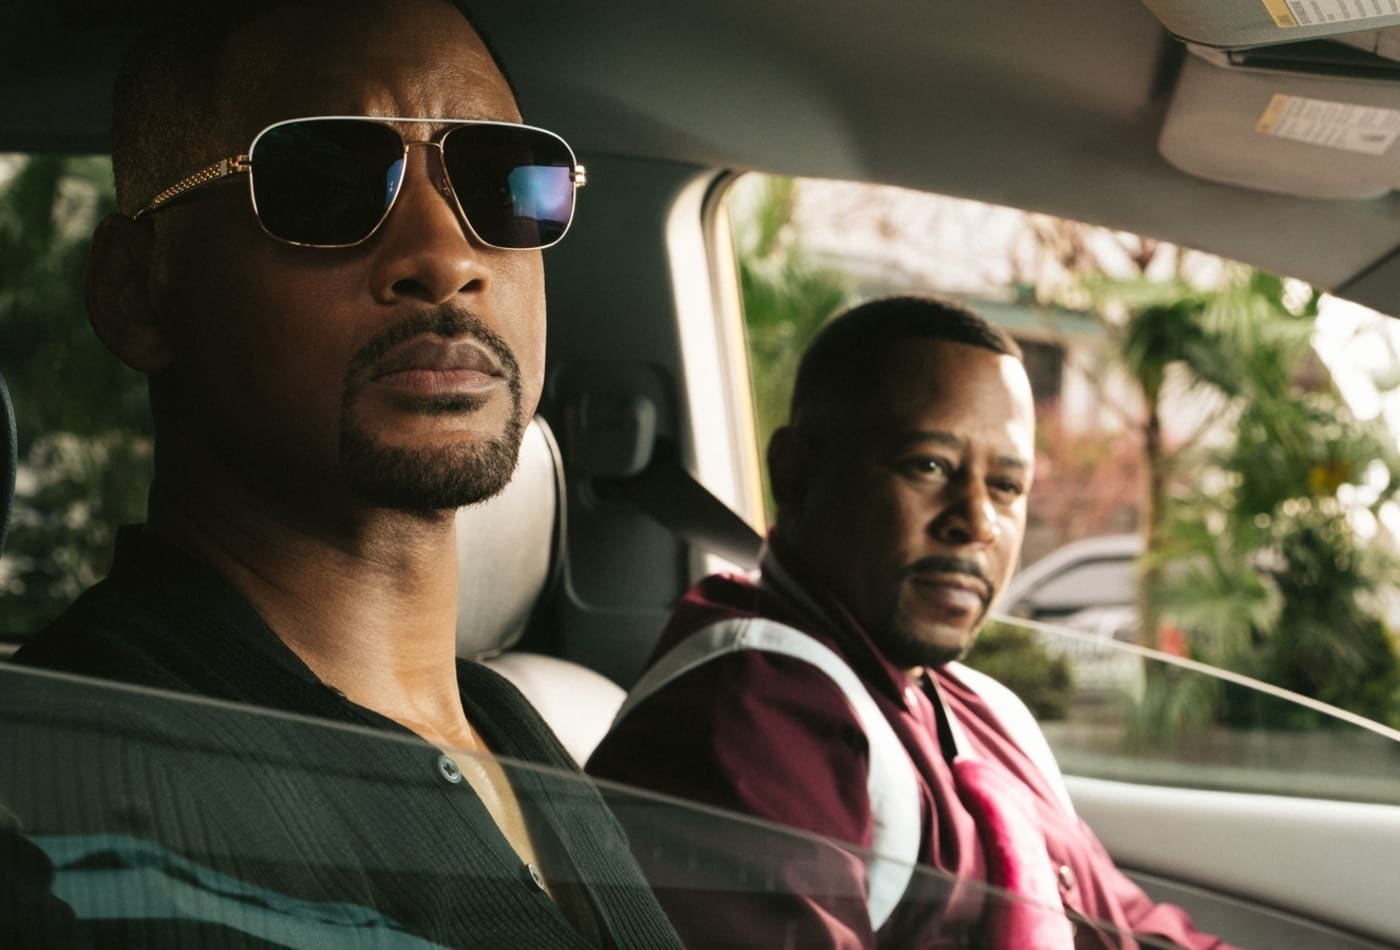 'Bad Boys For Life' breaks January box office record, 'Dolittle' meets expectations